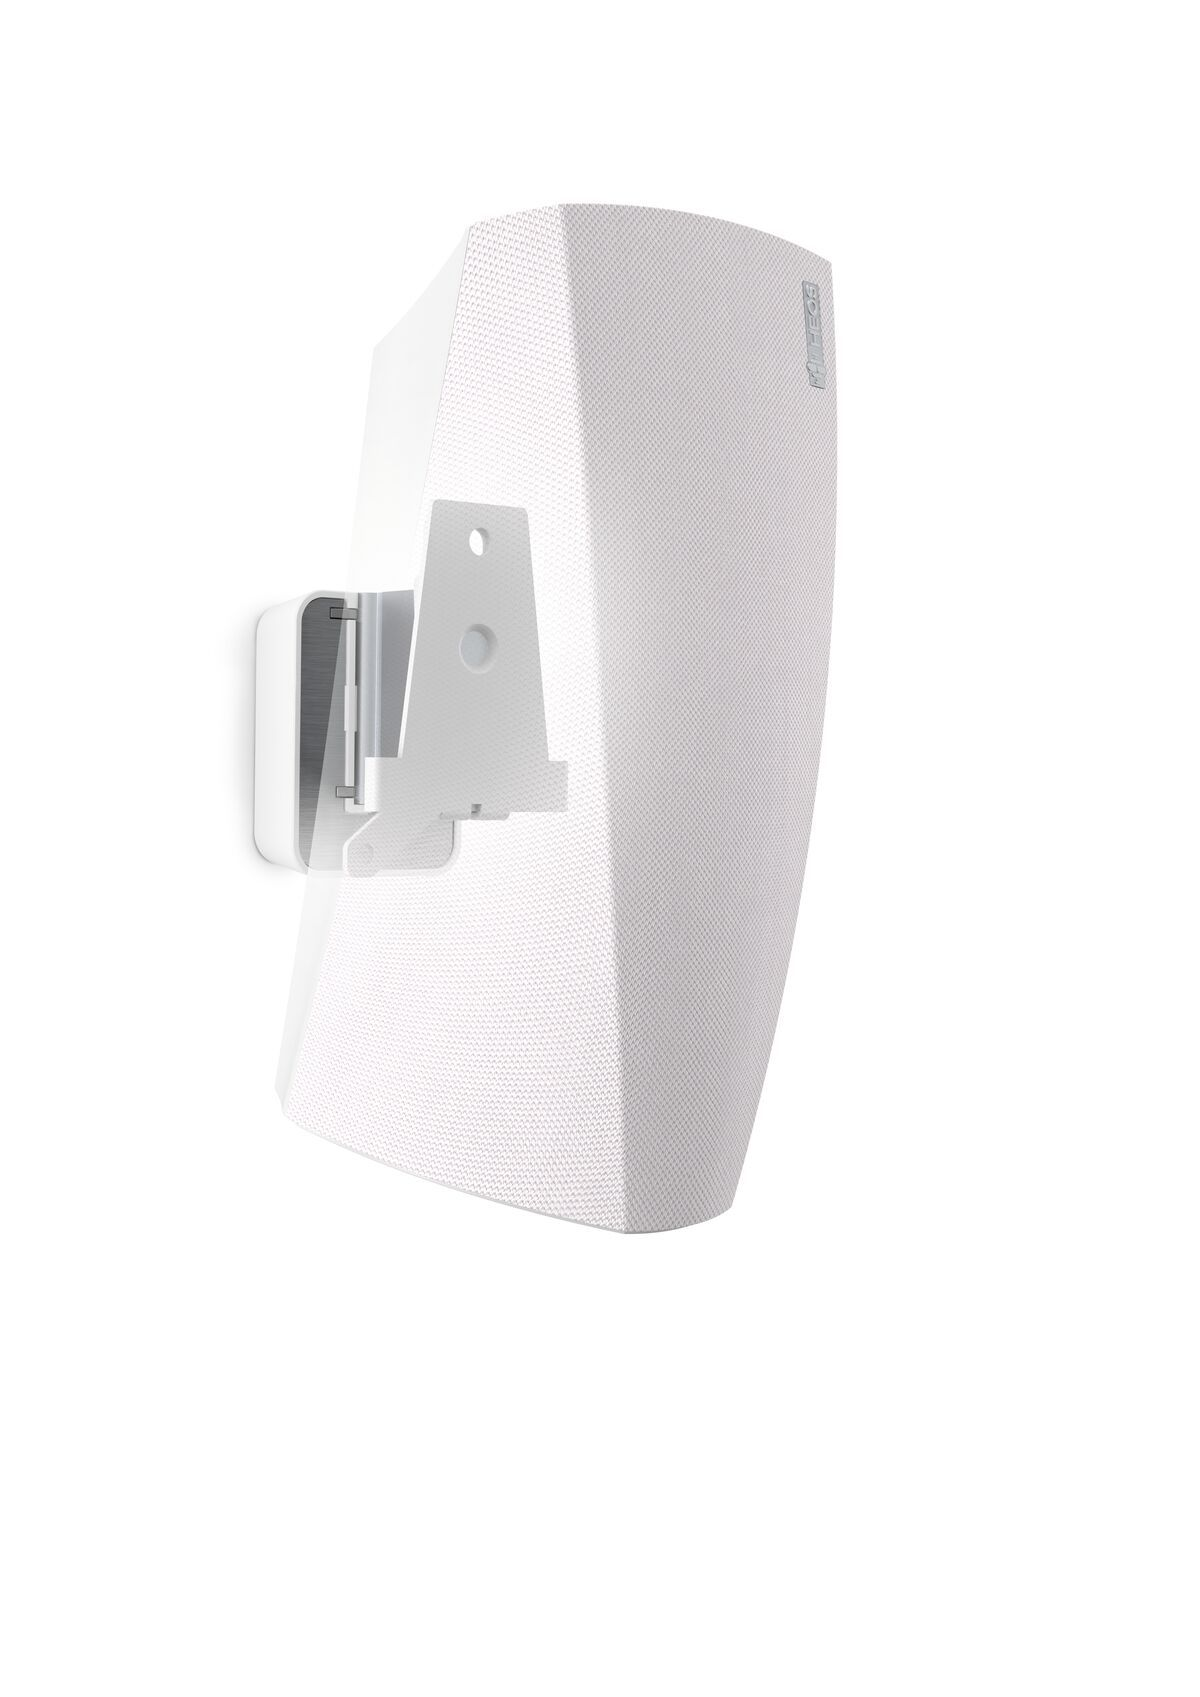 Vogel's SOUND 5203 Speaker Wall Mount for Denon HEOS 3 (white) - Application